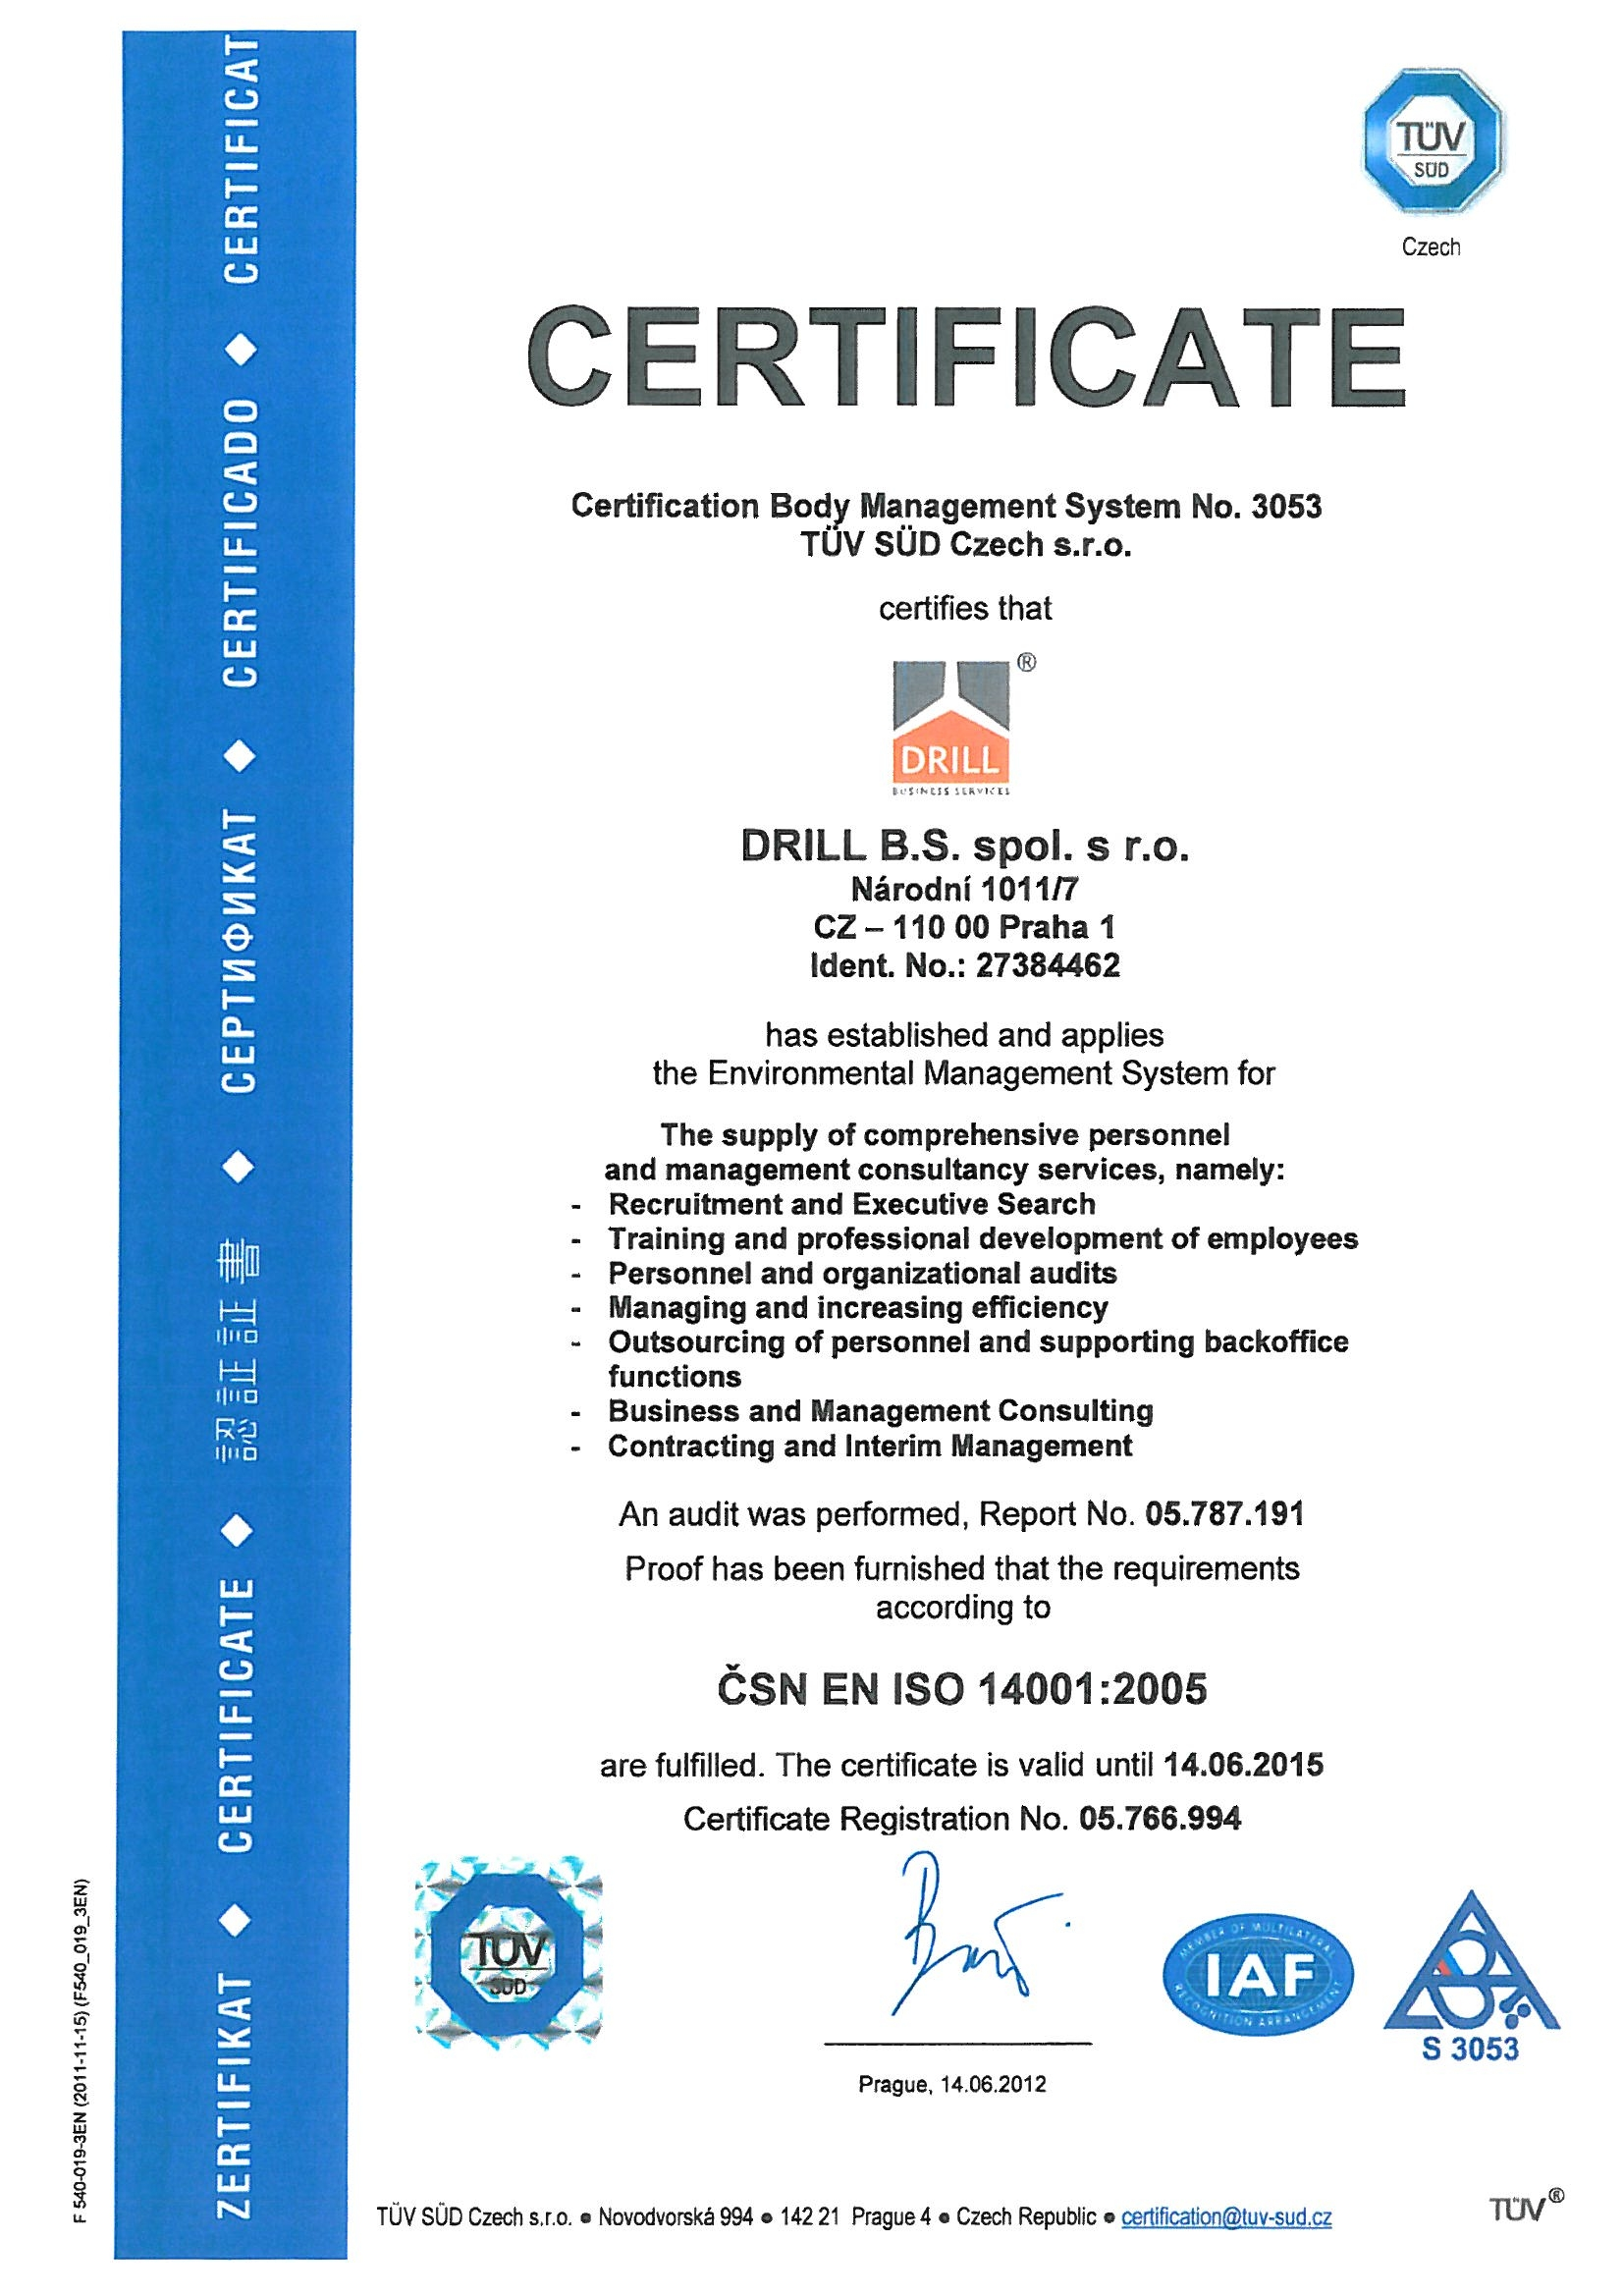 Drill bs executive search recruitment training bodyshop certificate of environmental management xflitez Choice Image